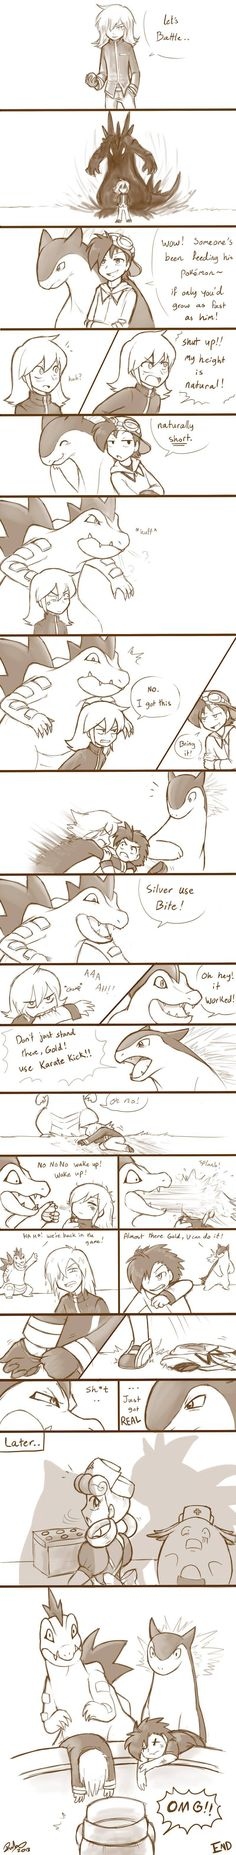 Pokemon - Silver vs Gold. Totally worth the read.